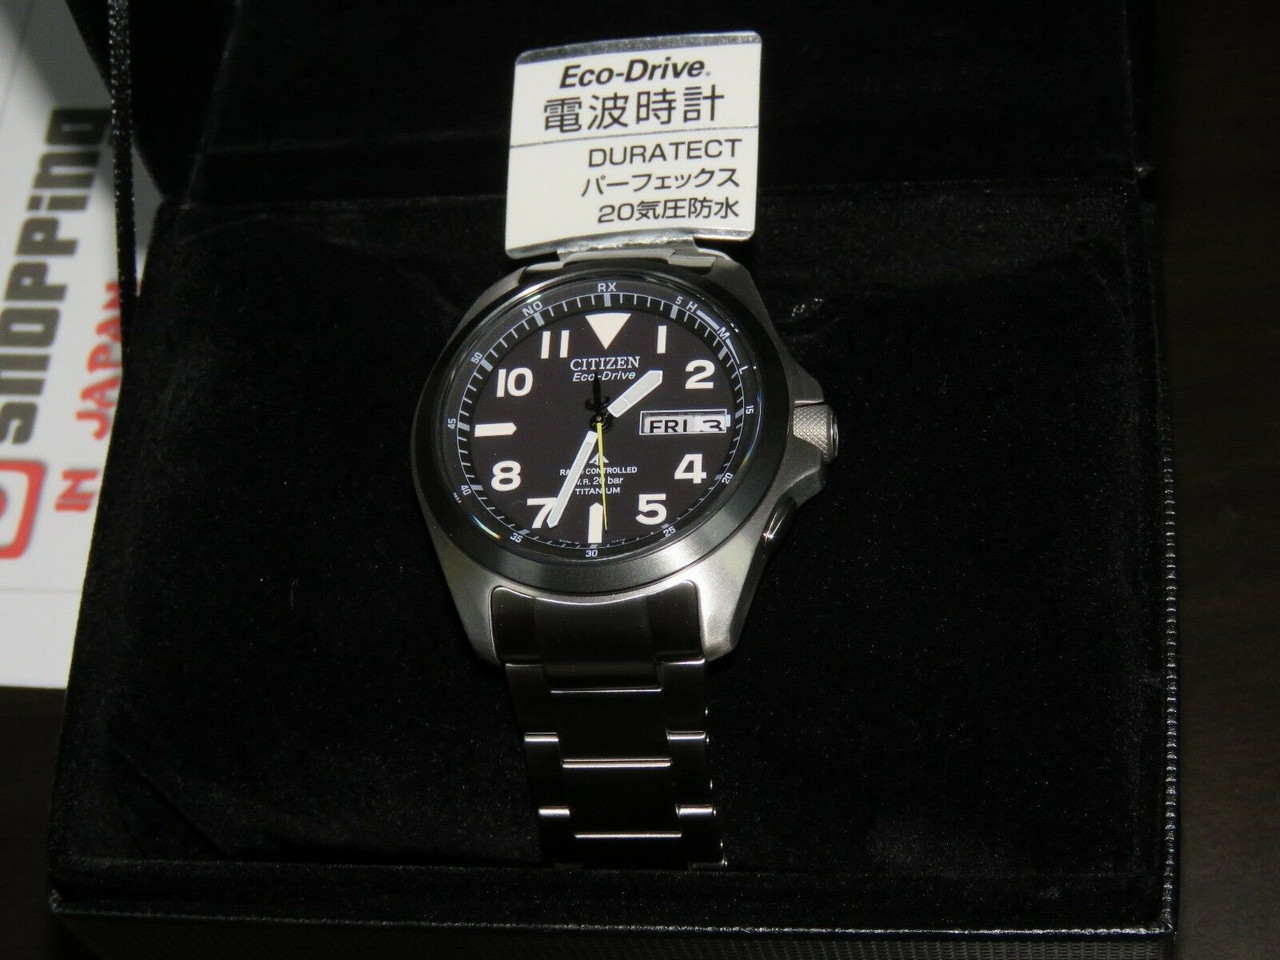 PMD56-2952 LAND Eco-Drive